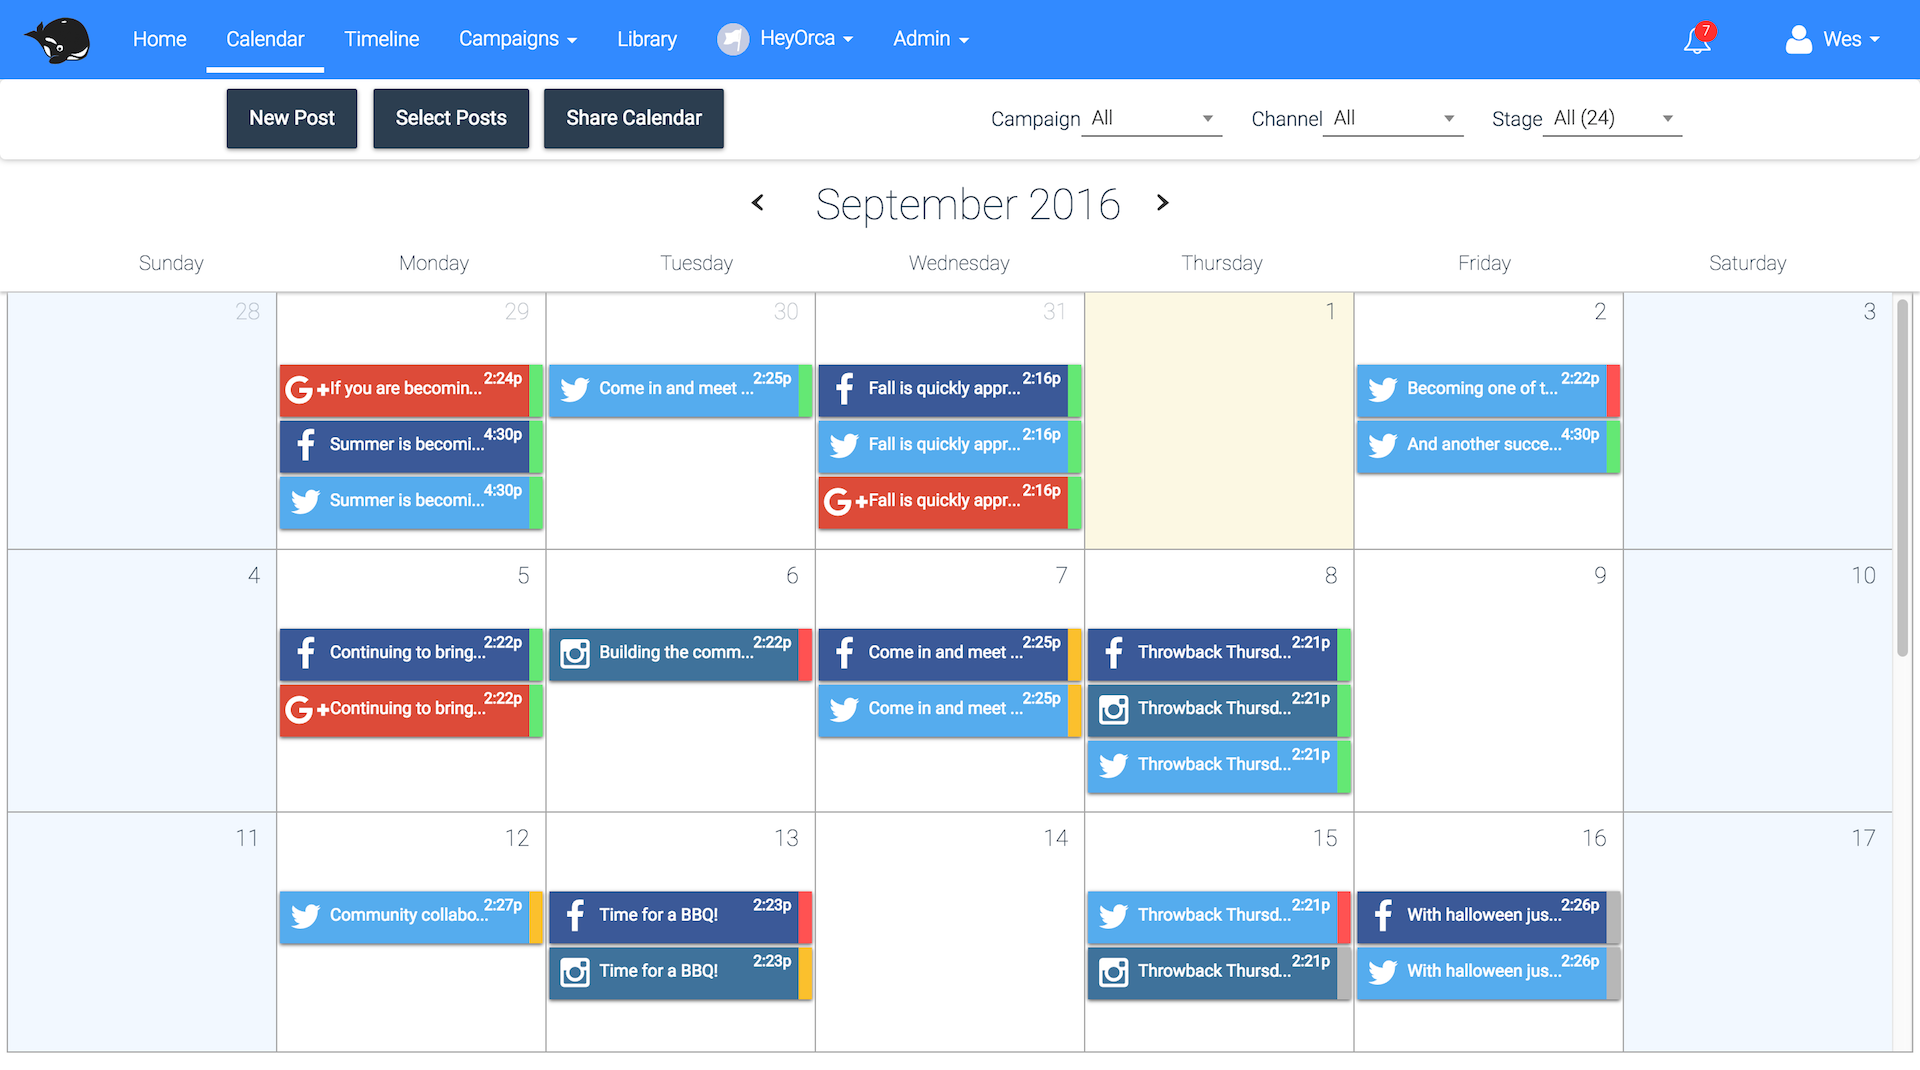 Heyorca Makes Social Media Planning And Approvals Easy Seamlessly